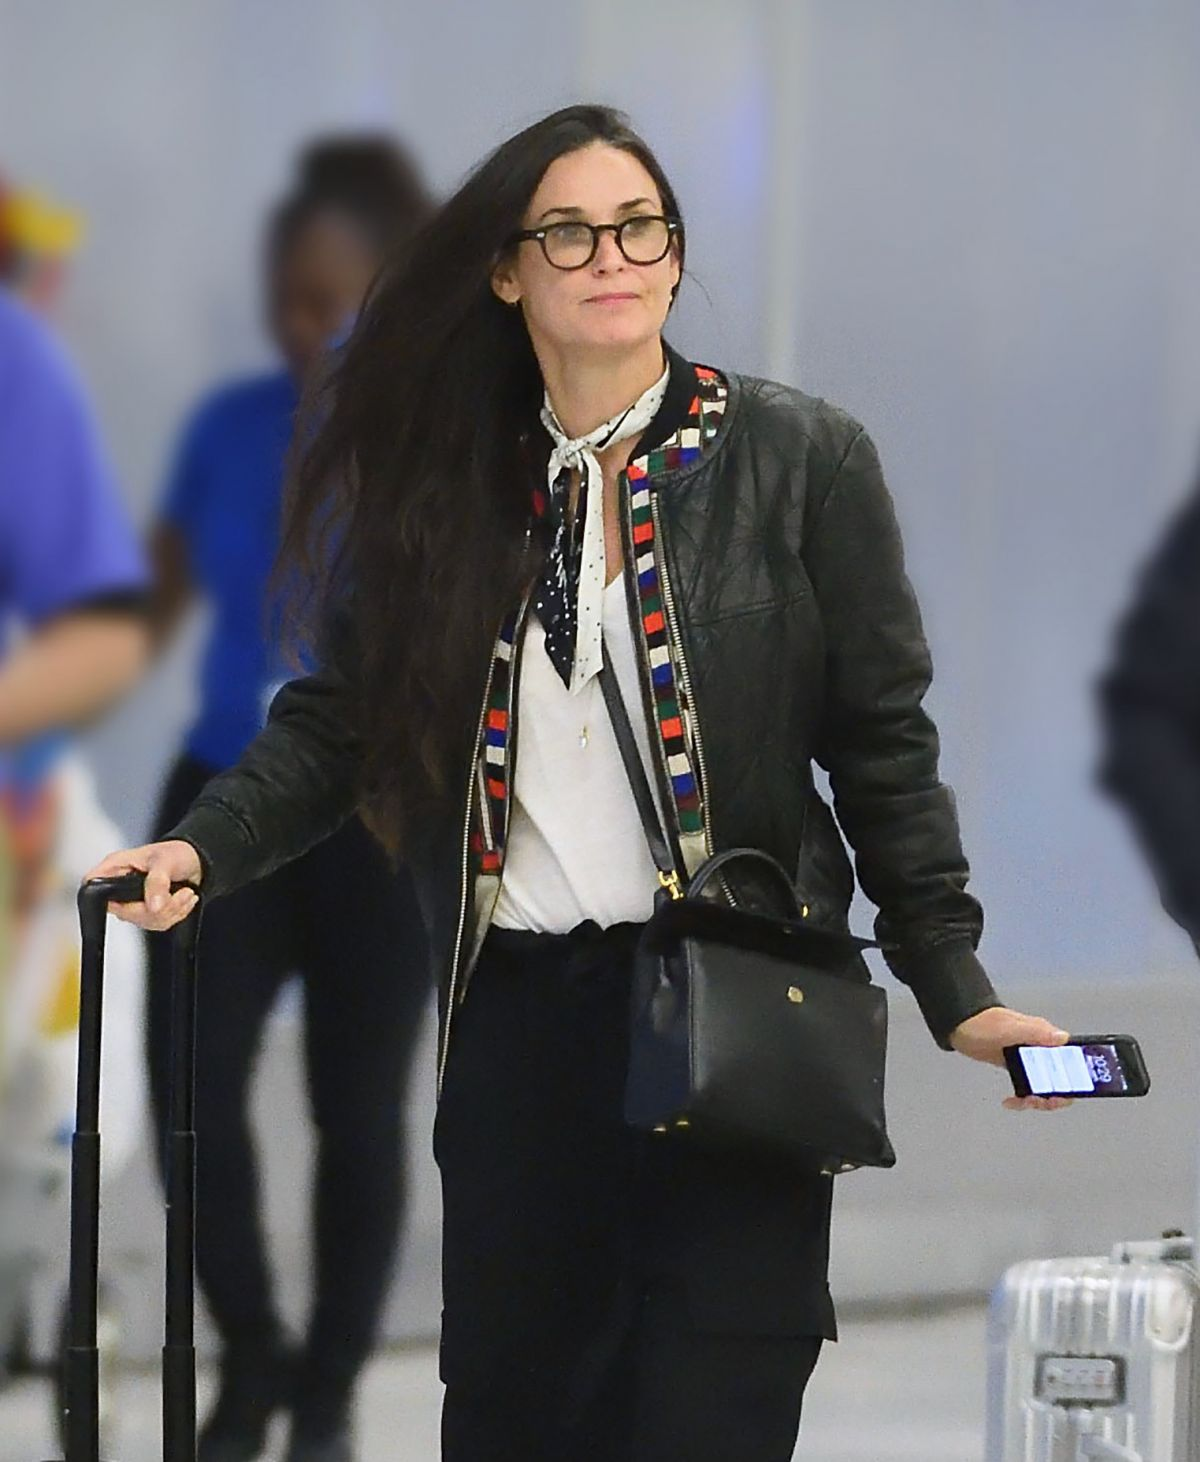 DEMI MOORE at JFK Airport in New York 06/10/2017